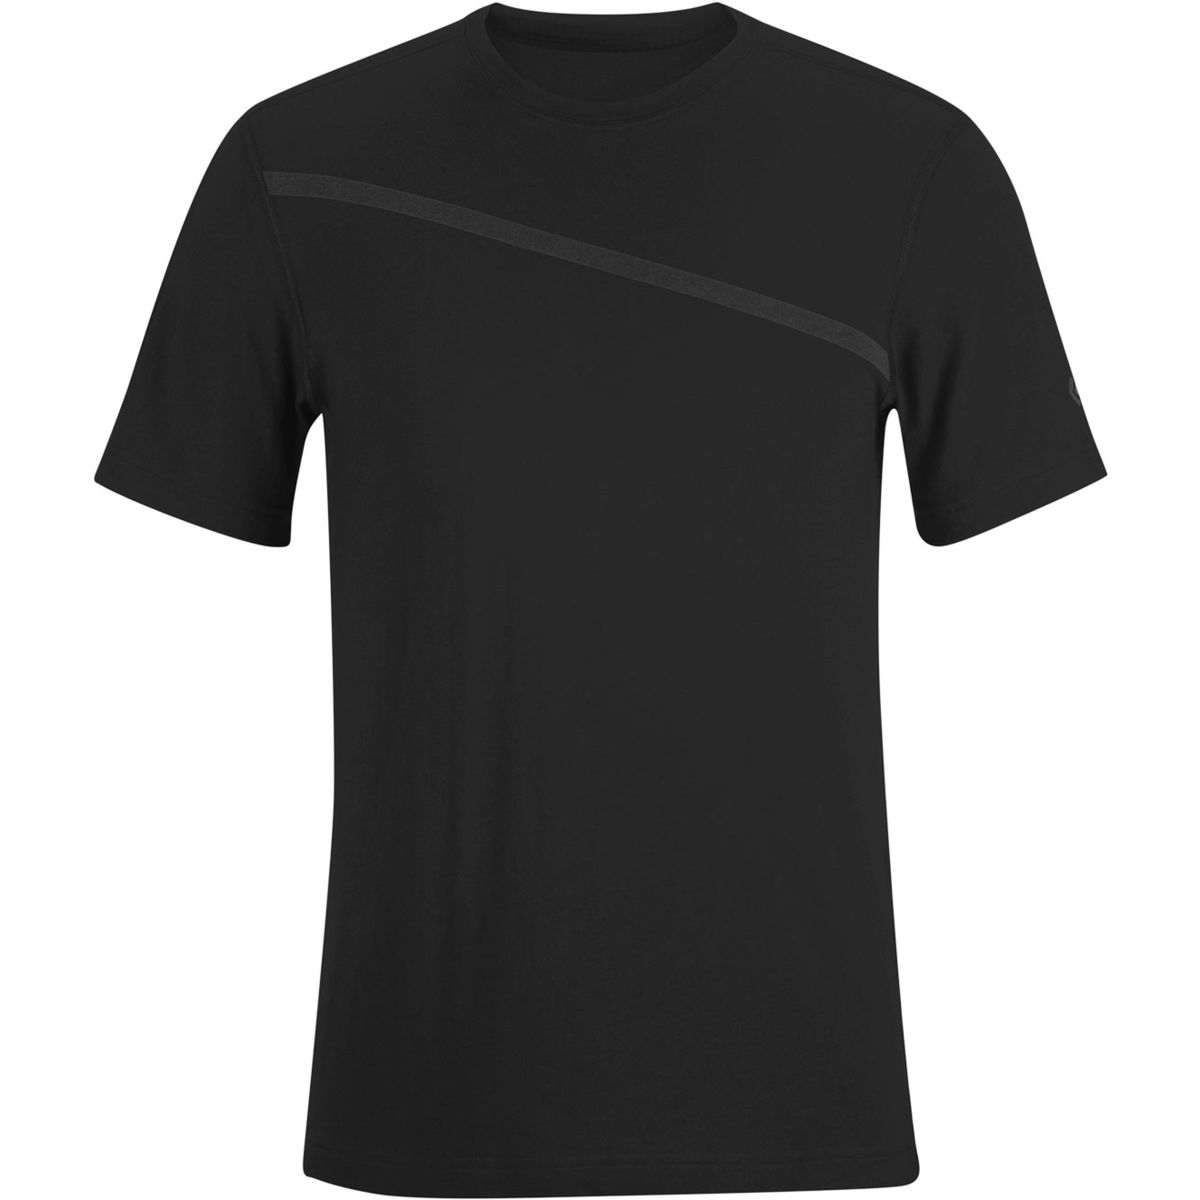 Black Diamond Cottonwood Tee